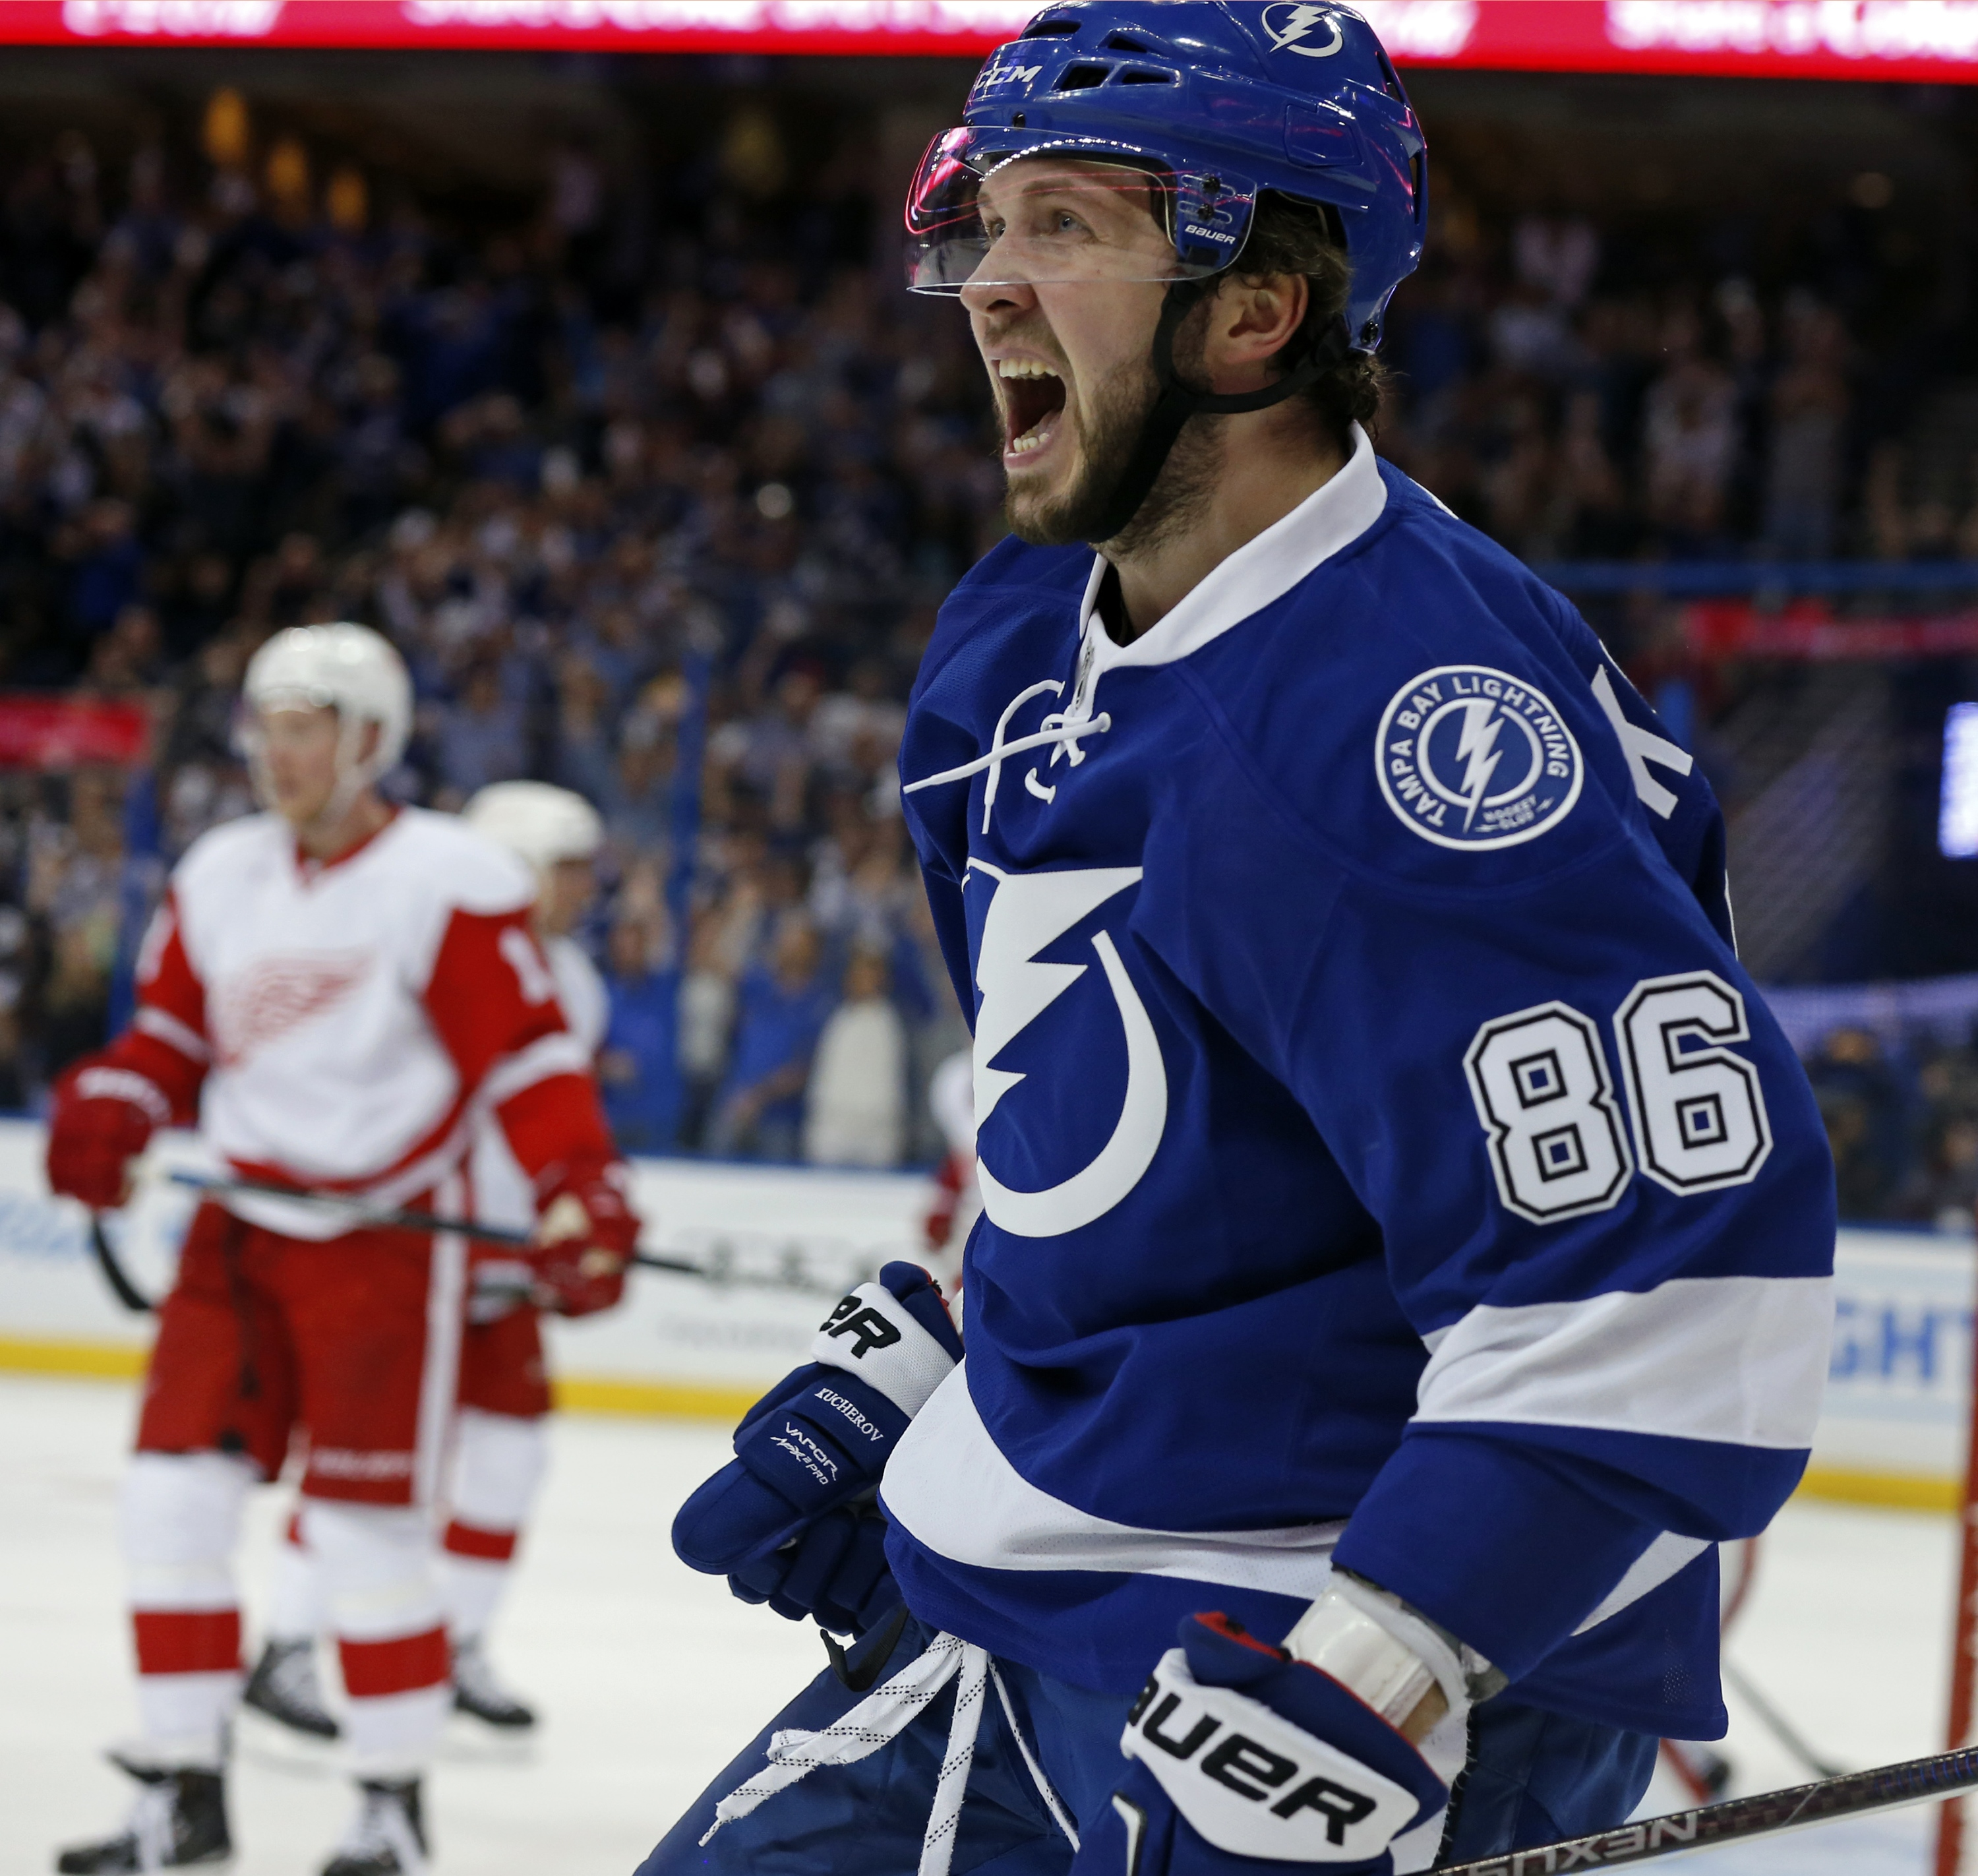 TAMPA, FL - APRIL 13: Nikita Kucherov #86 of the Tampa Bay Lightning celebrates a goal against the Detroit Red Wings during the second period in Game One of the Eastern Conference Quarterfinals during the 2016 NHL Stanley Cup Playoffs at Amalie Arena on April 13, 2016 in Tampa, Florida. (Photo by Mike Carlson/Getty Images)